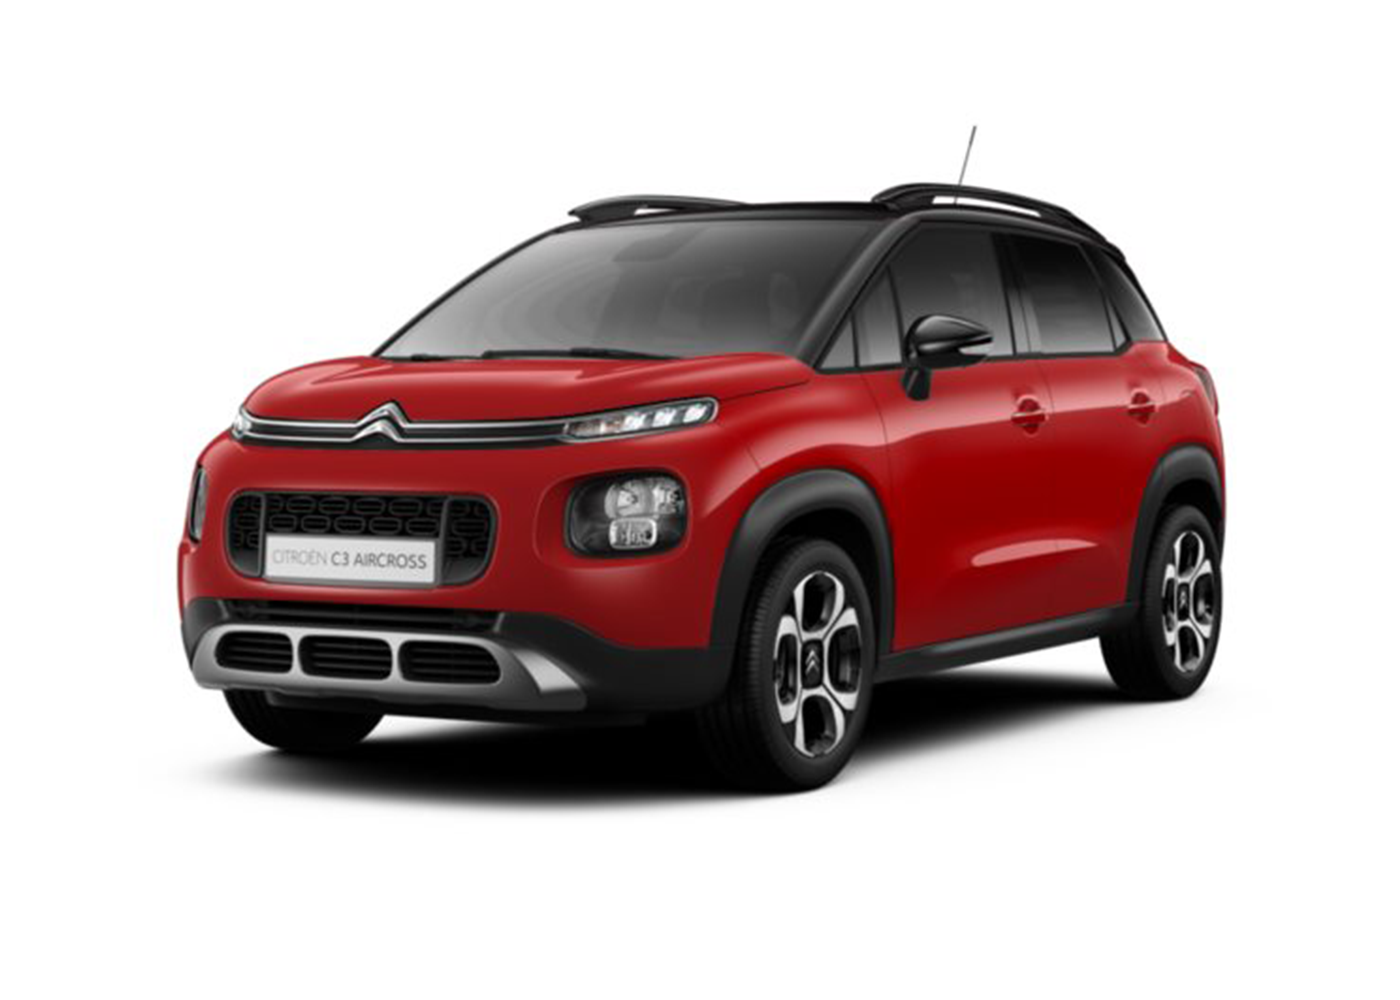 citroen c3 aircross bluehdi 100 shine passion red km0 a soli 19500 su miacar 1a9bv. Black Bedroom Furniture Sets. Home Design Ideas